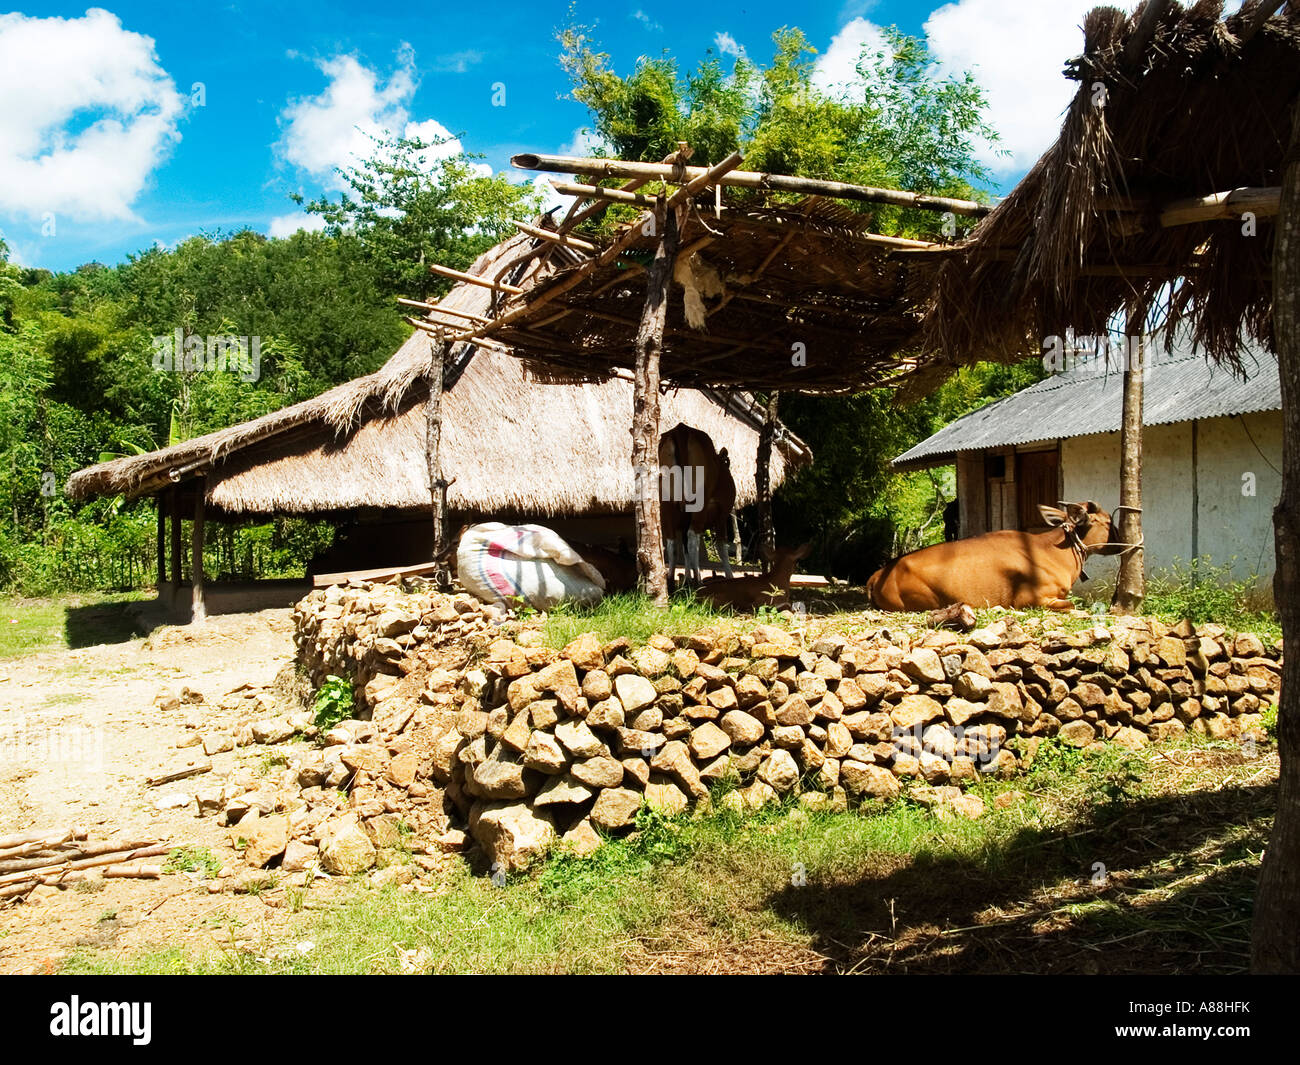 Traditional Wood And Straw Buildings In The Village Of Ende Lombok Indonesia